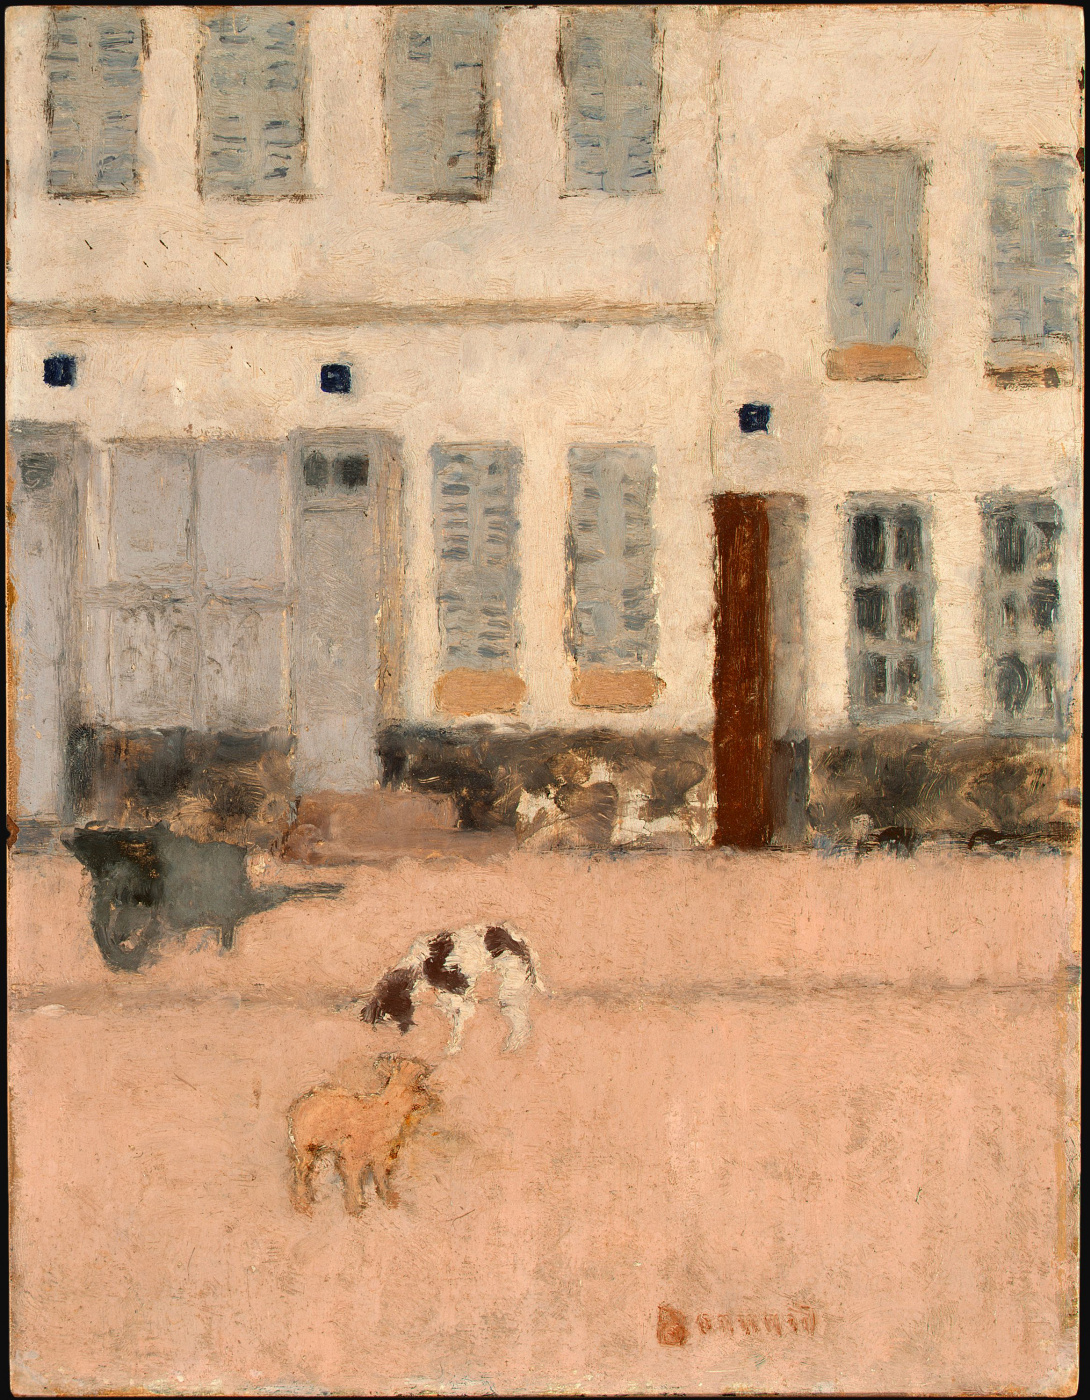 Pierre Bonnard. Deserted street and dog